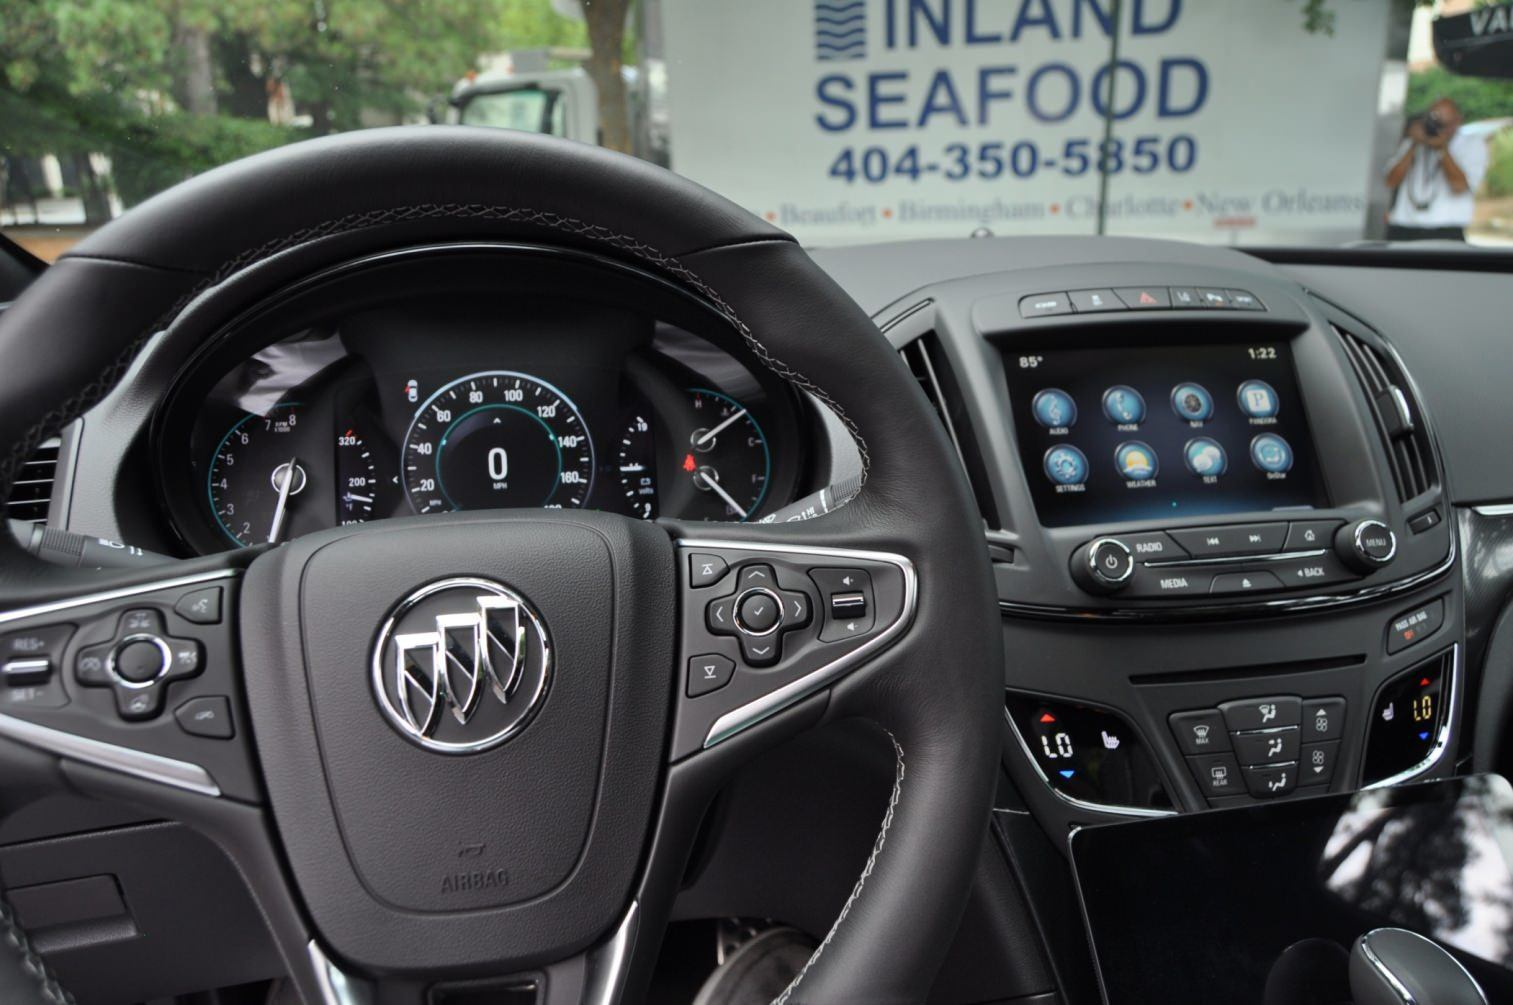 Buick OnStar 4GLTE As Standard Is A Game-Changer for In-Car Mobile Broadband 28